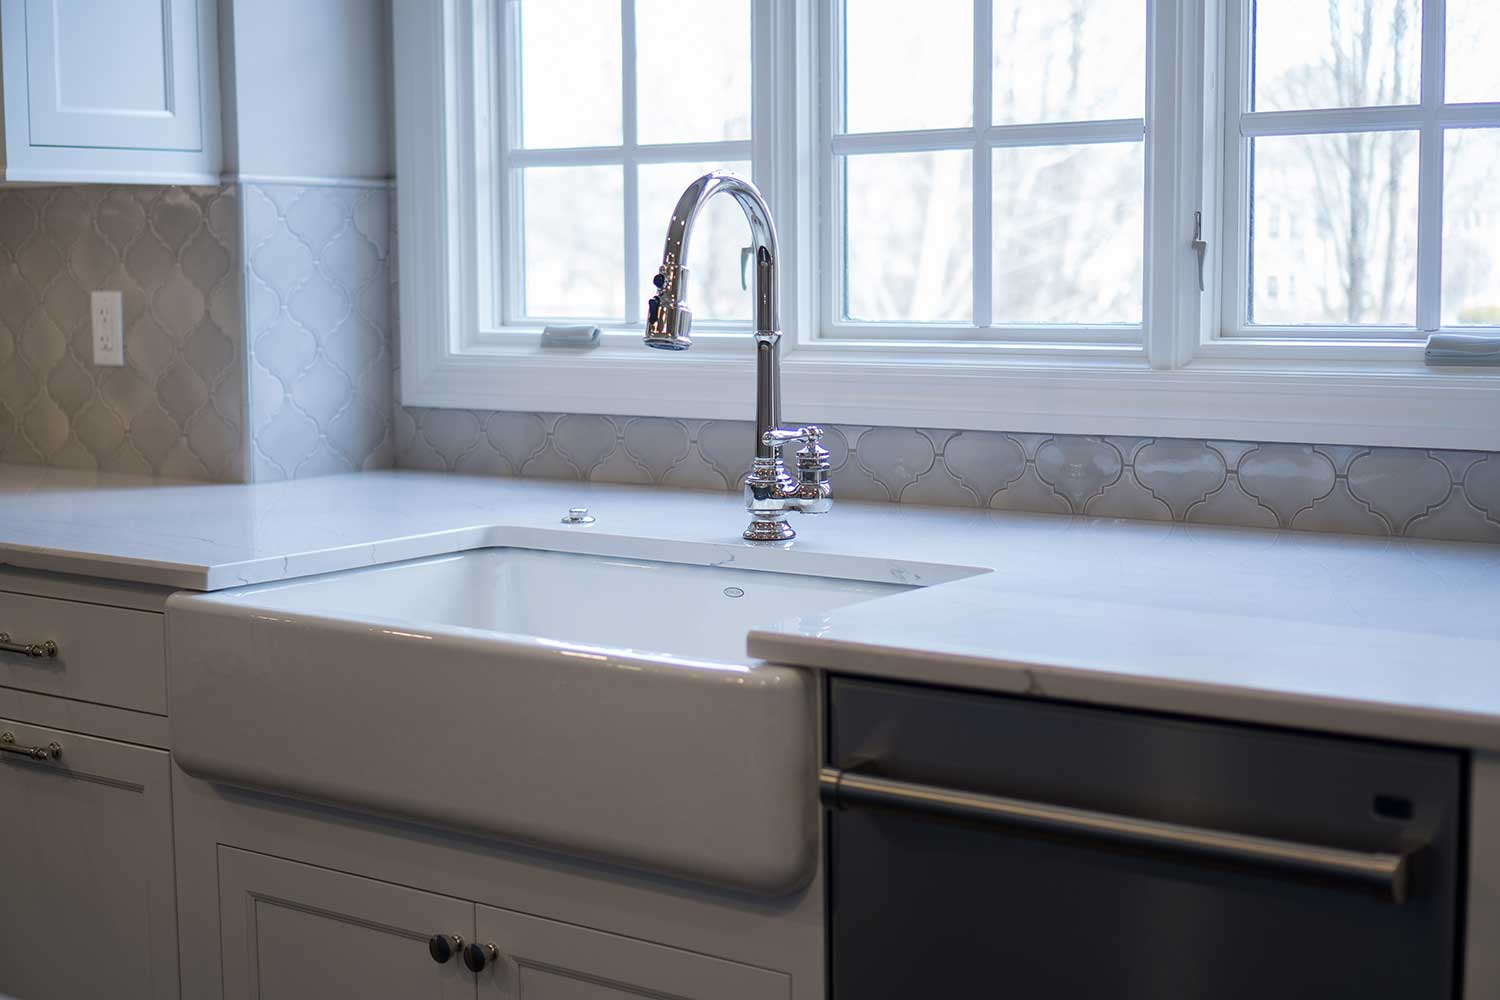 White marble counter with silver faucet and drop down sink